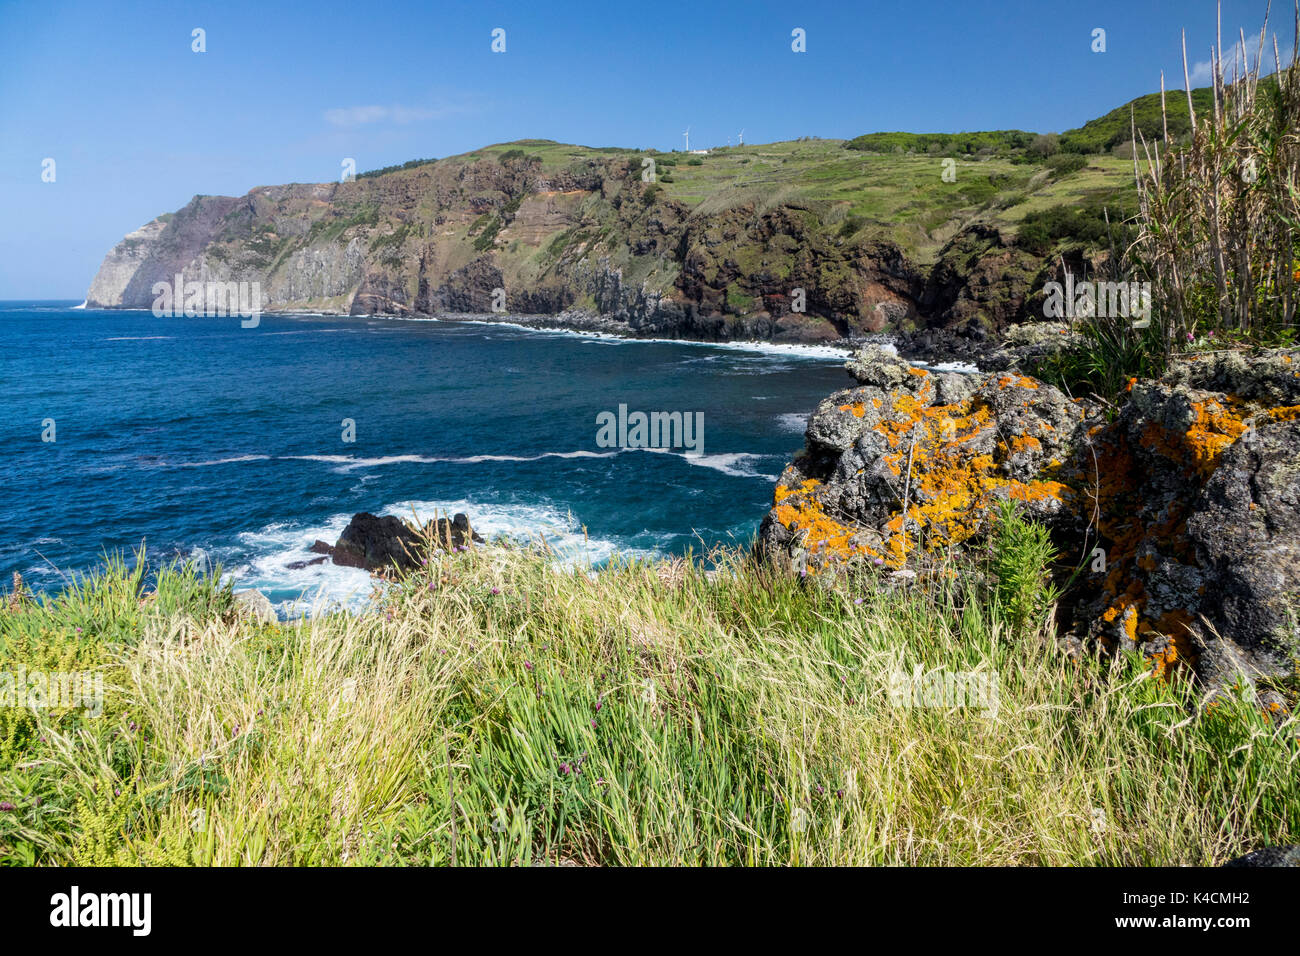 Cliffline With Blue Atlantic And White Surge, In The Front Green Meadow And Volcanic Rocks Overgrown With Lichen. Graciosa, Azores - Stock Image